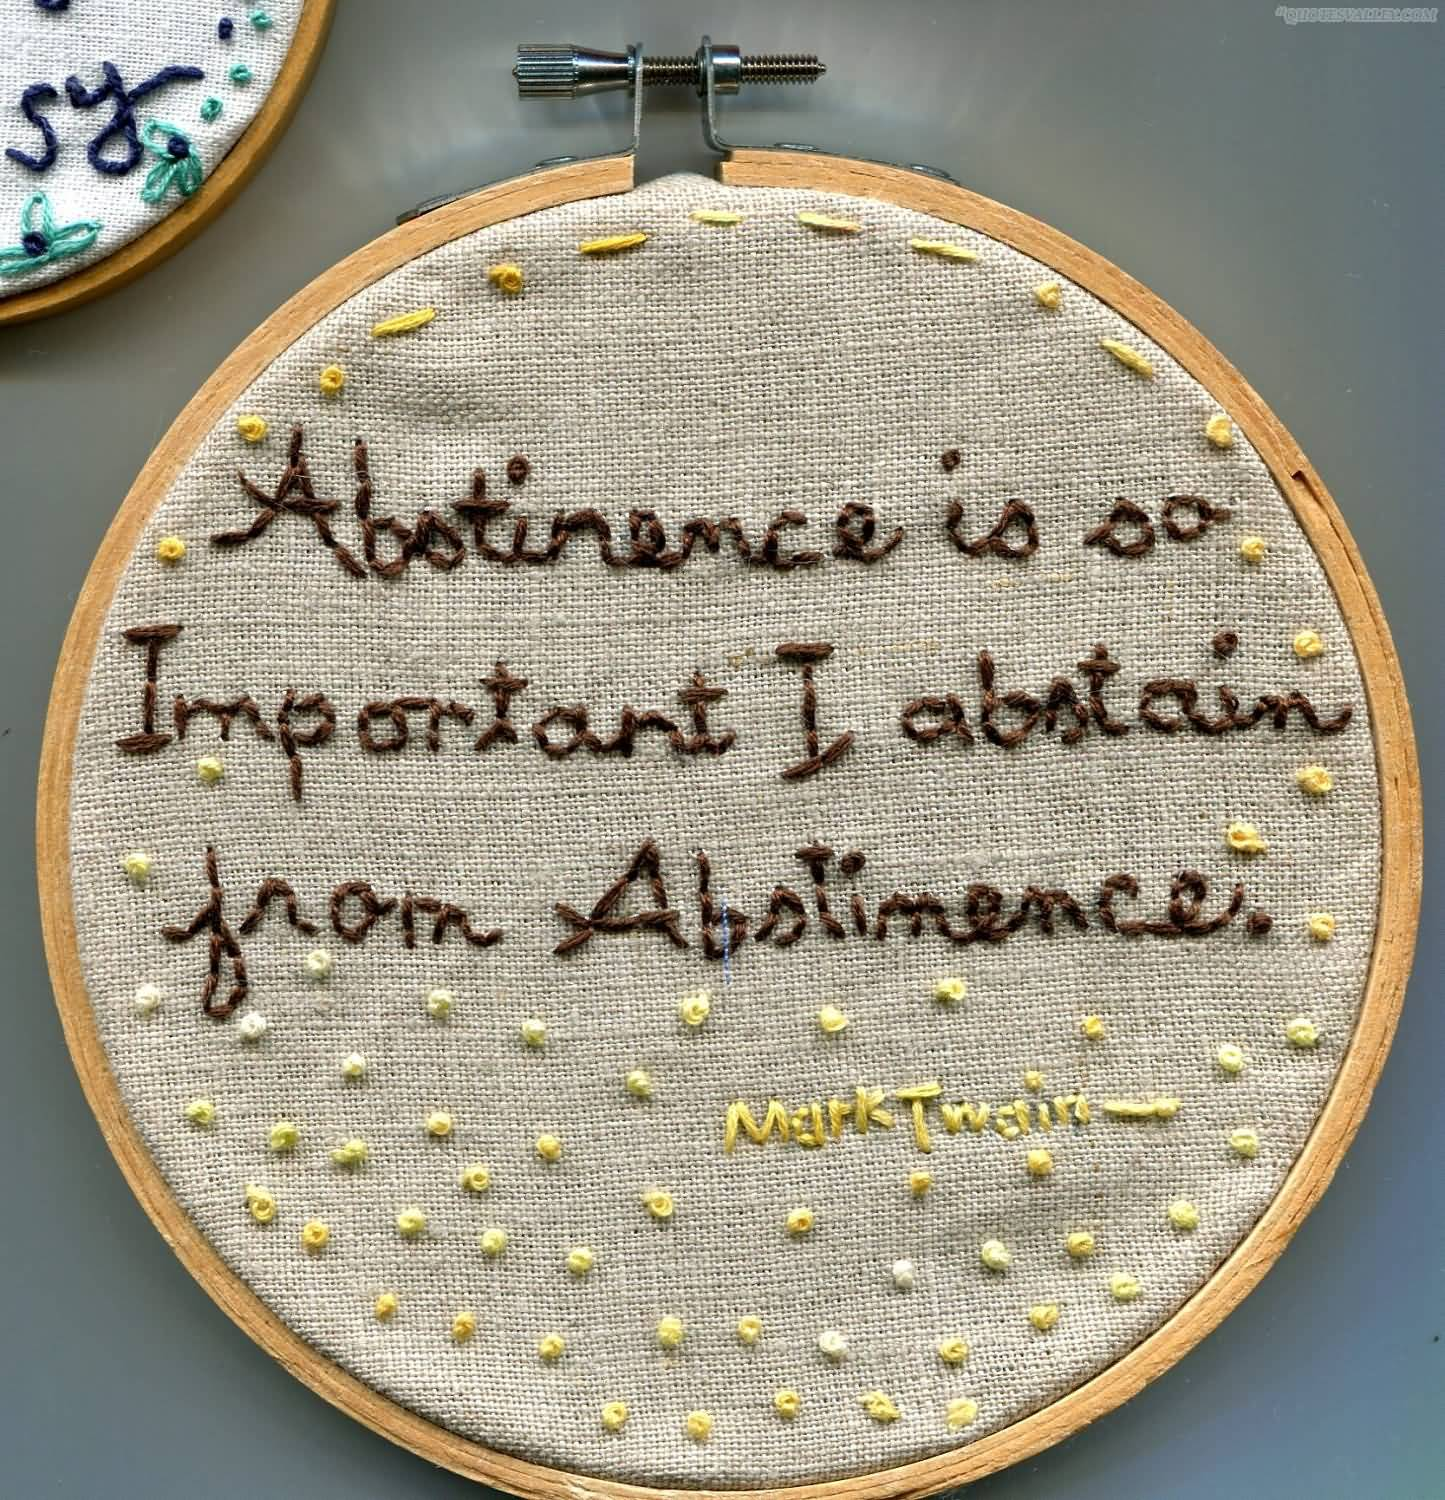 Abstinence Is So Important I Abstain From Abstinence.